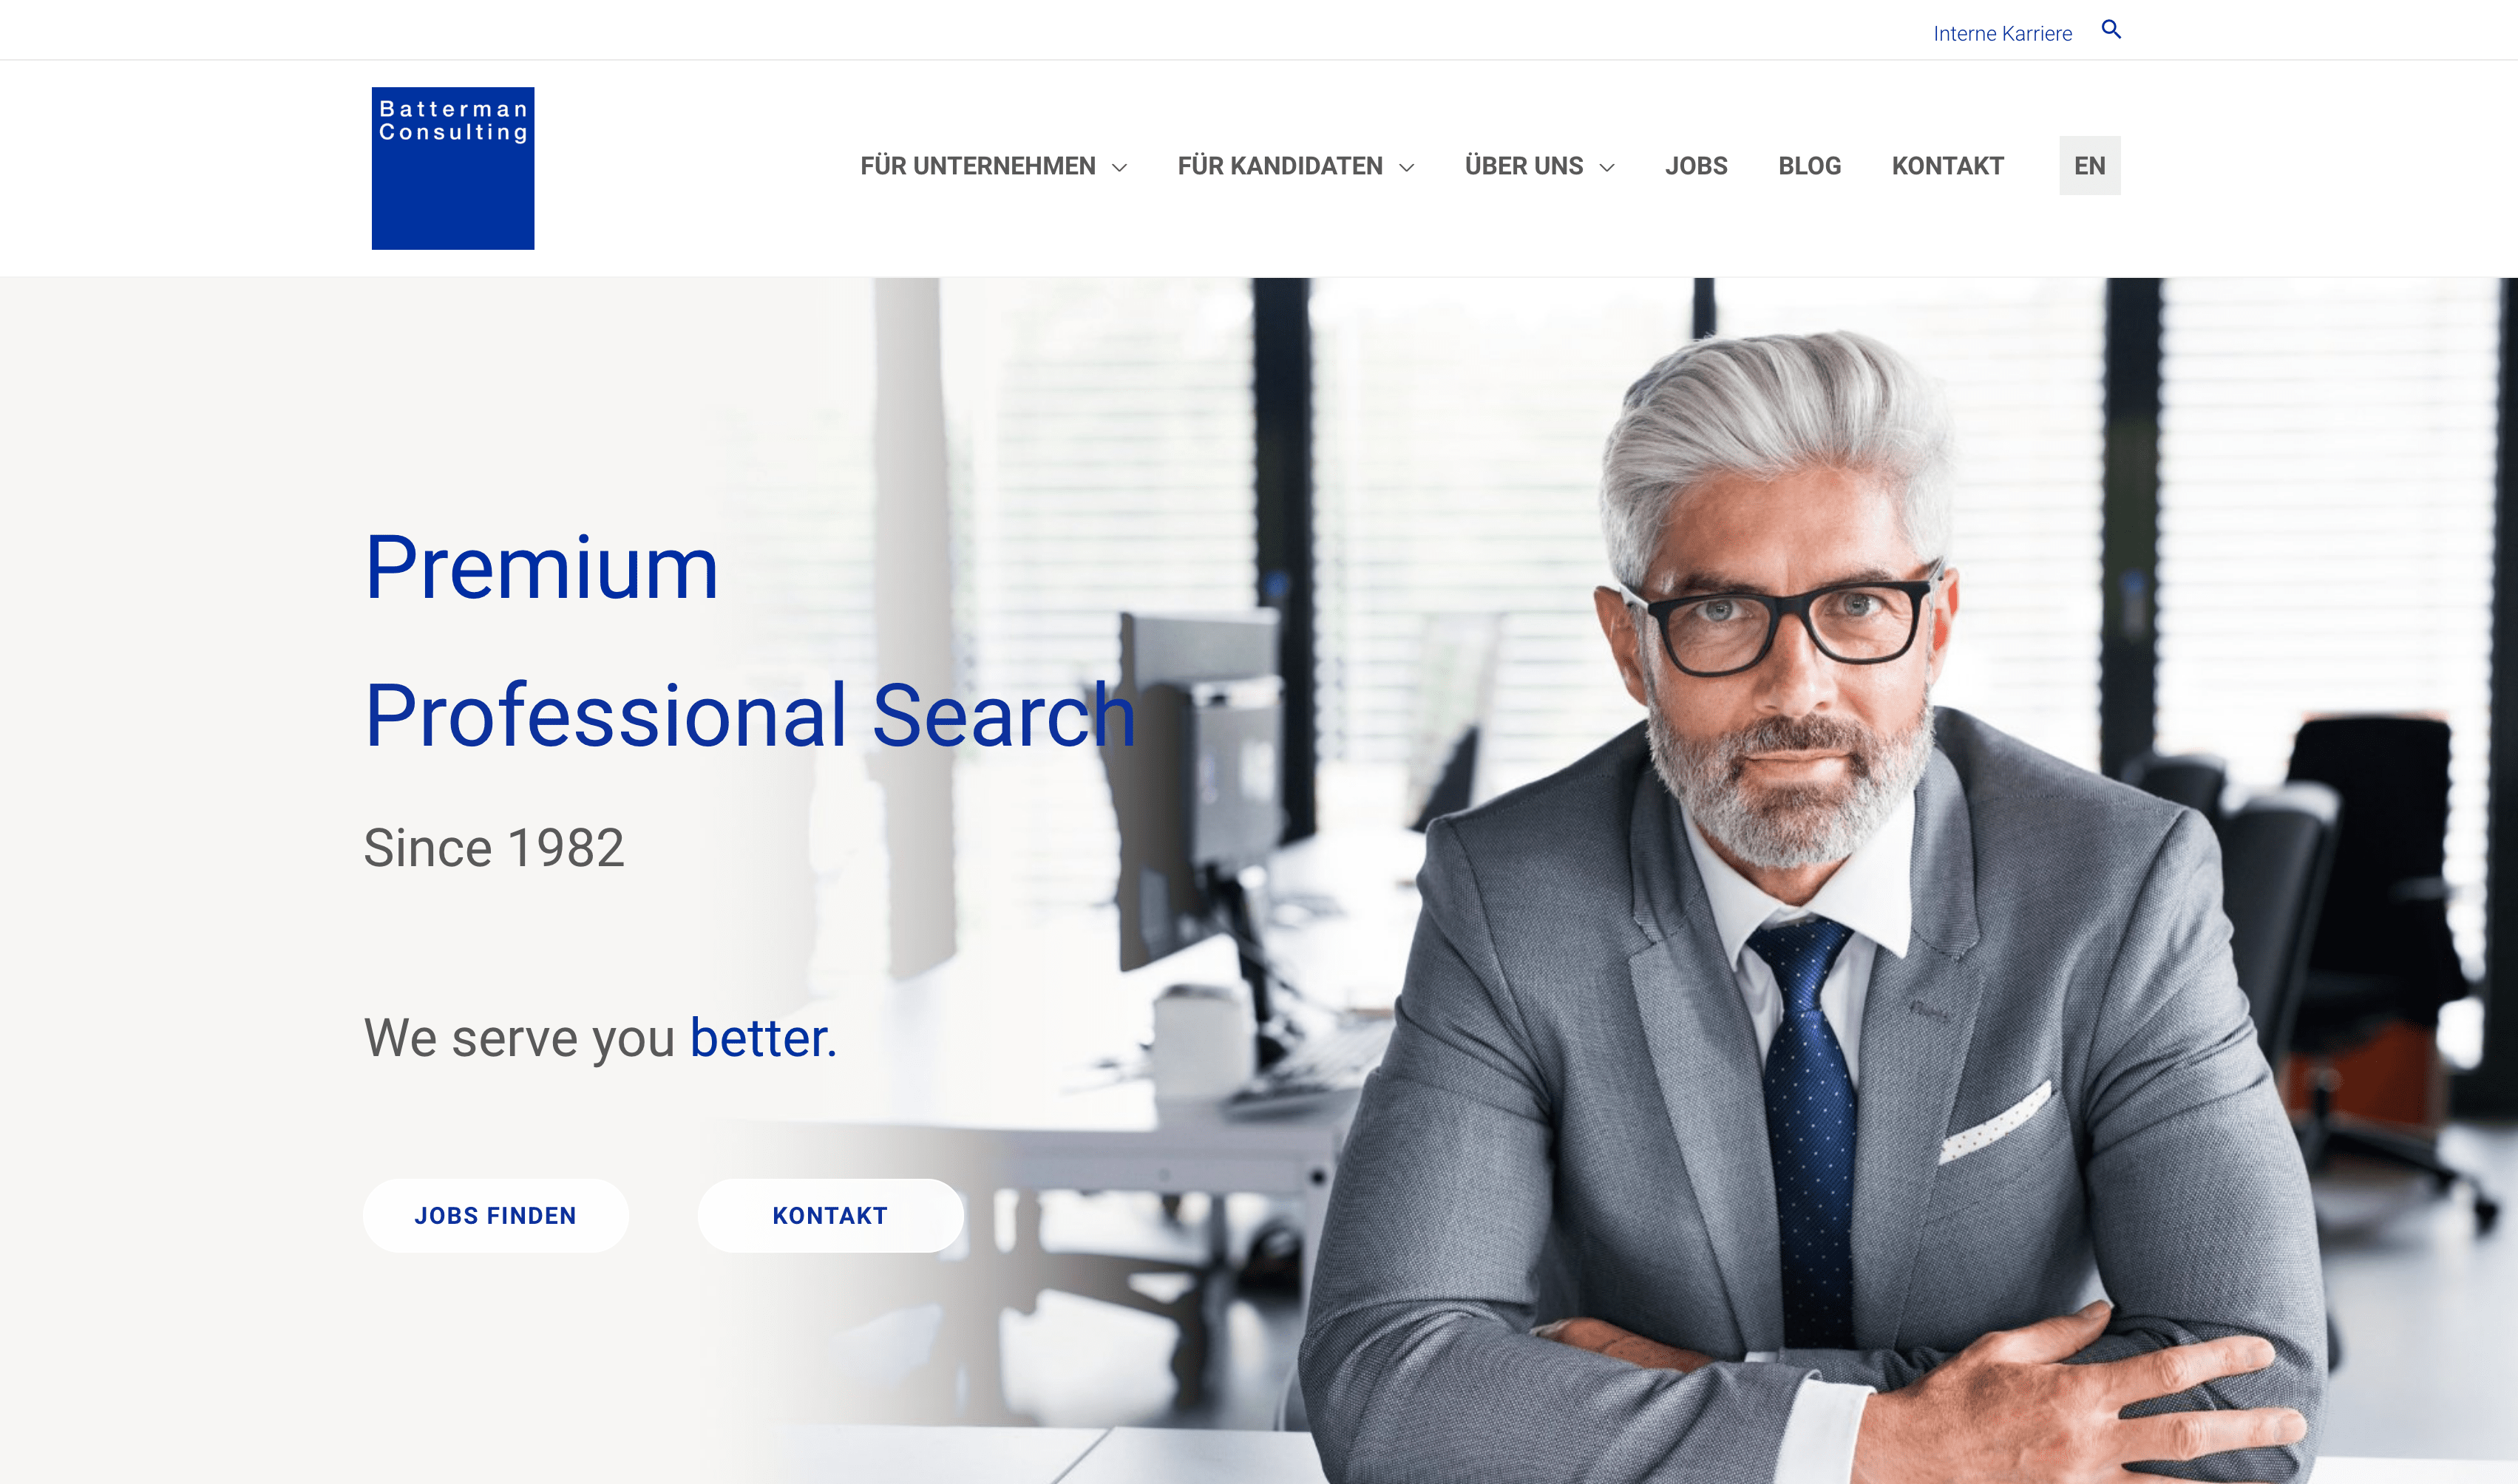 batterman consulting executive search